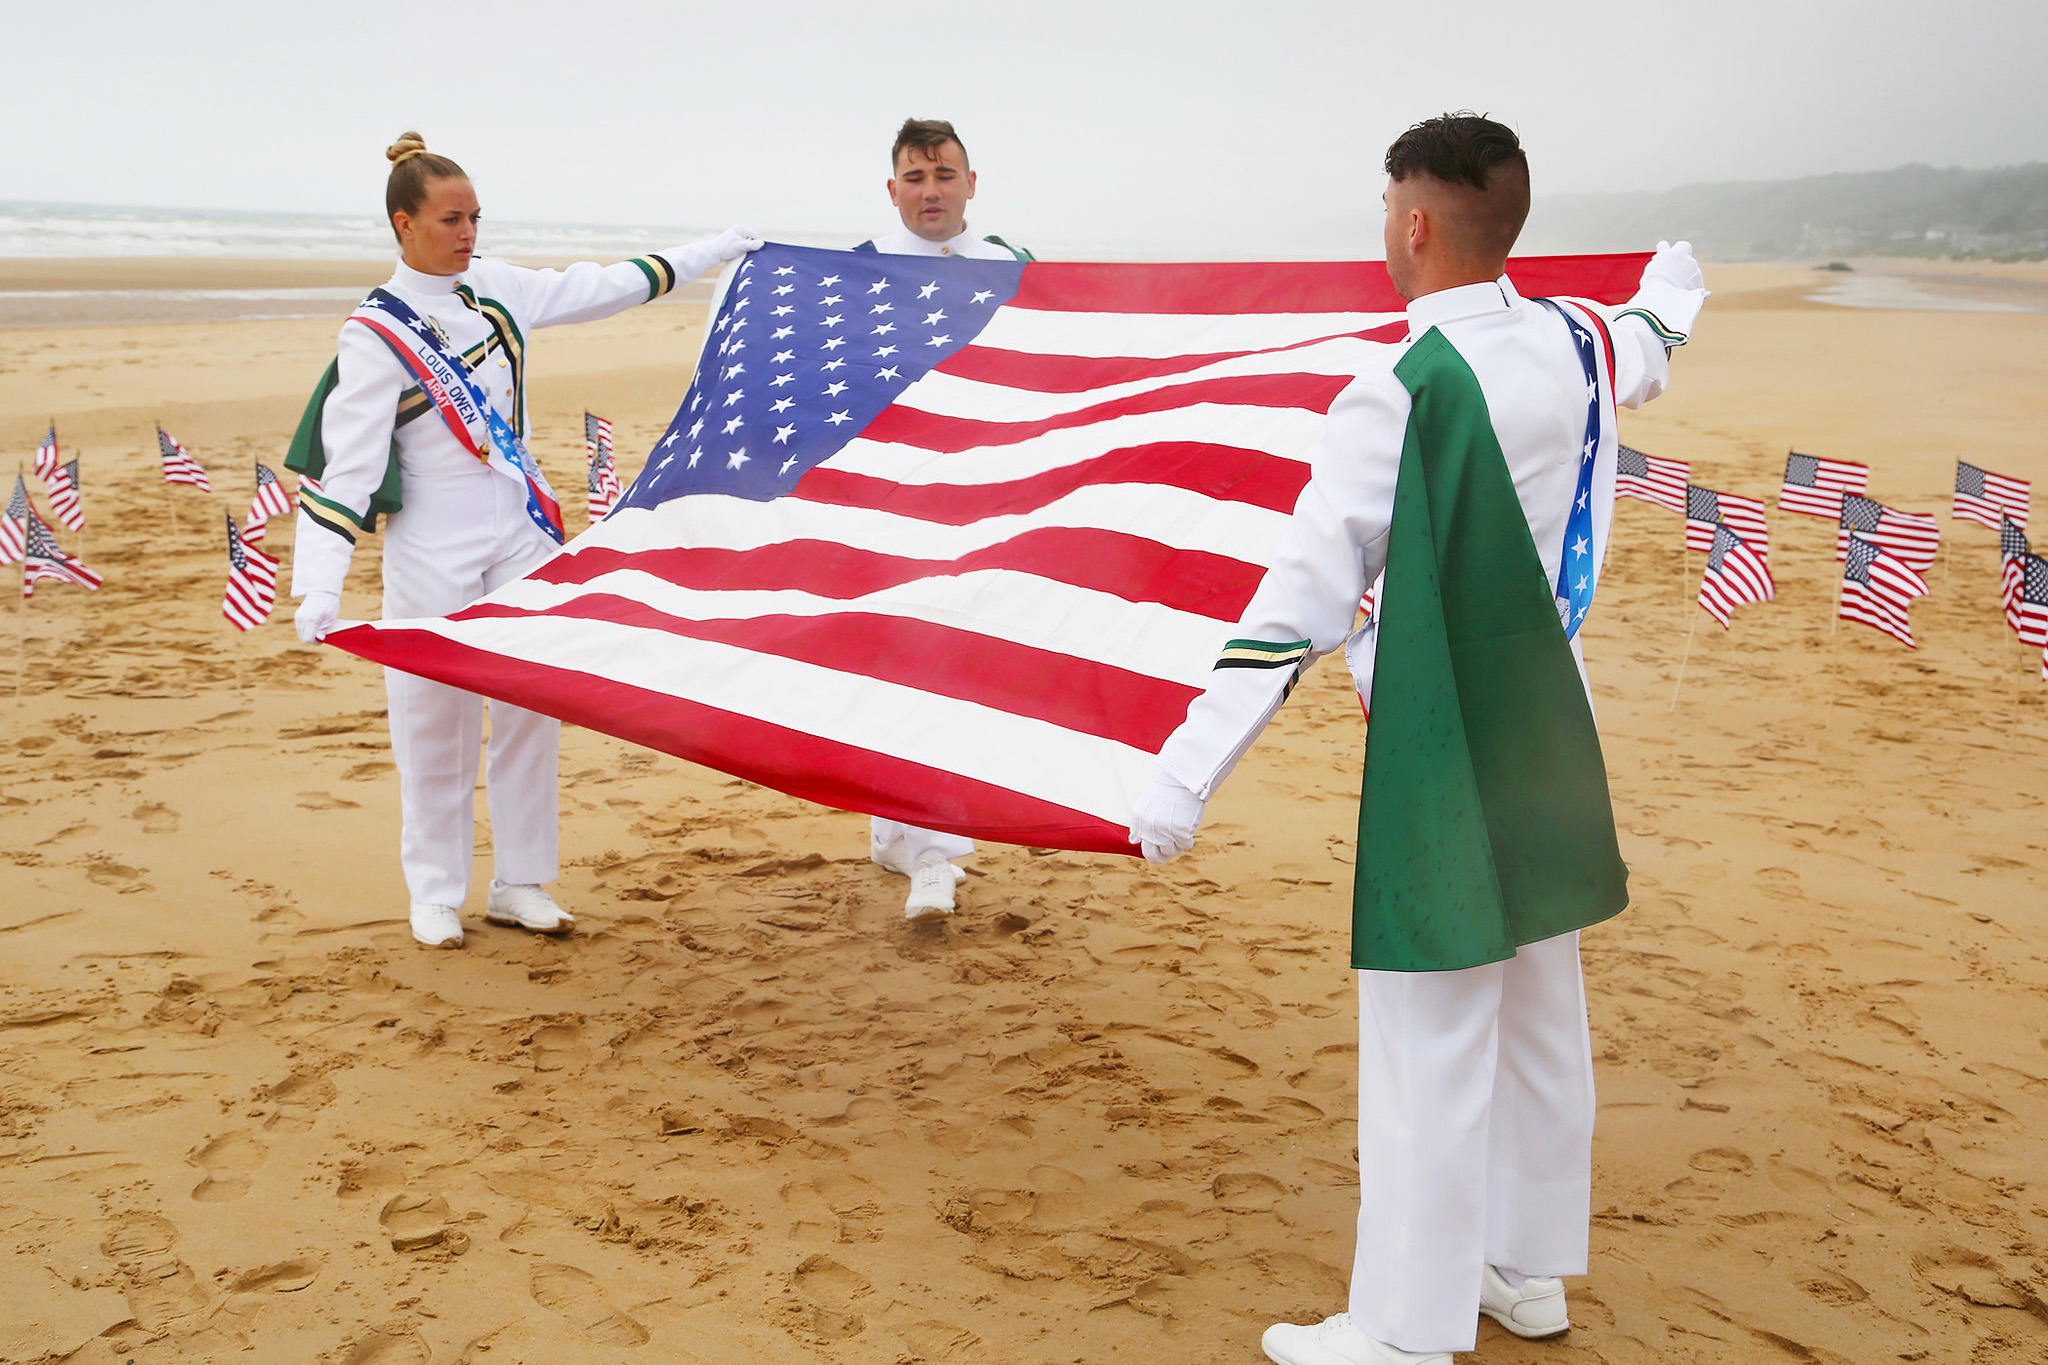 Drum majors with American flag